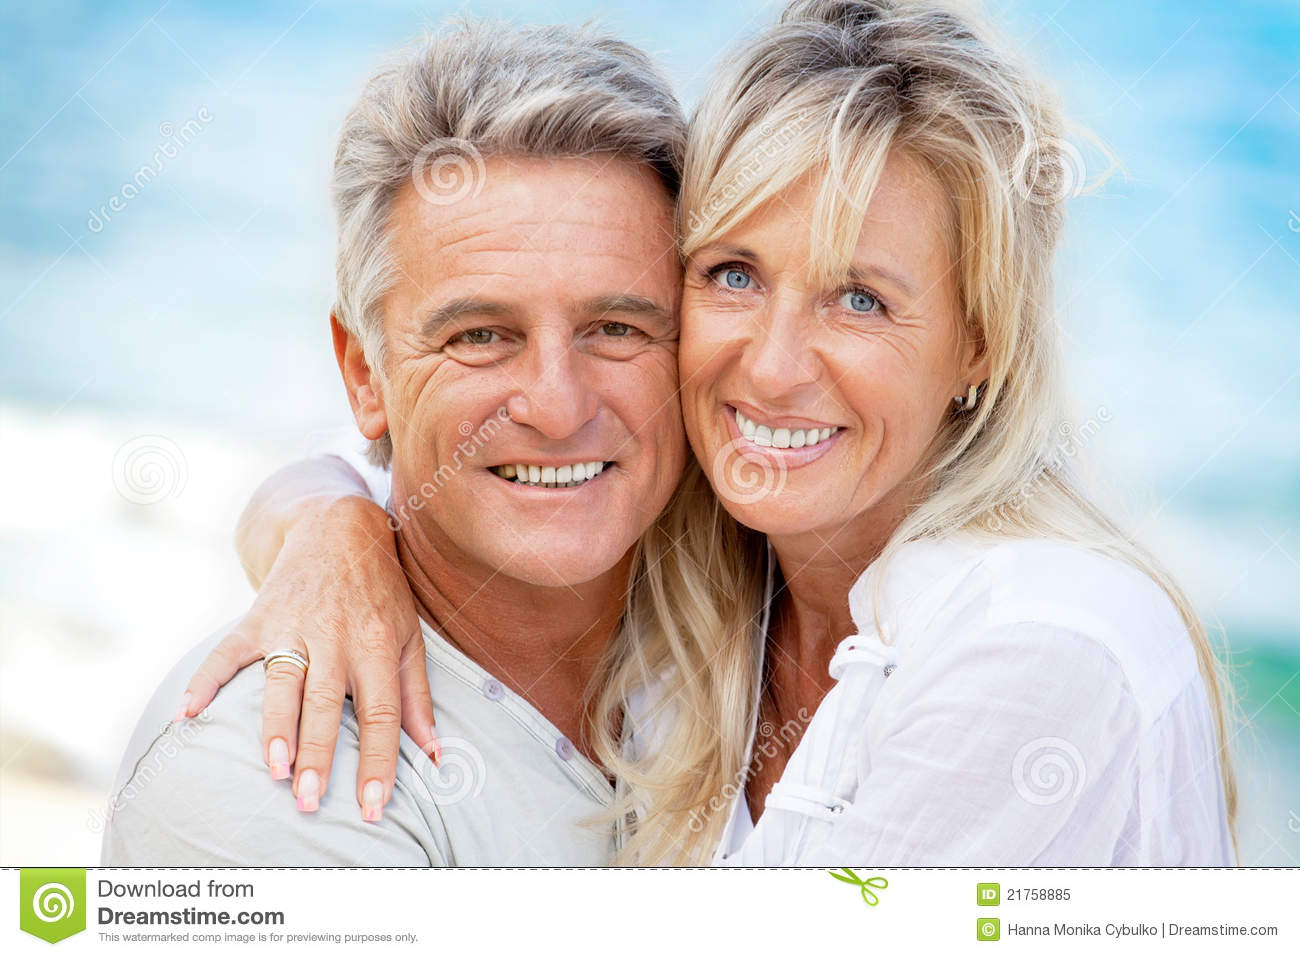 Portrait of a happy romantic couple